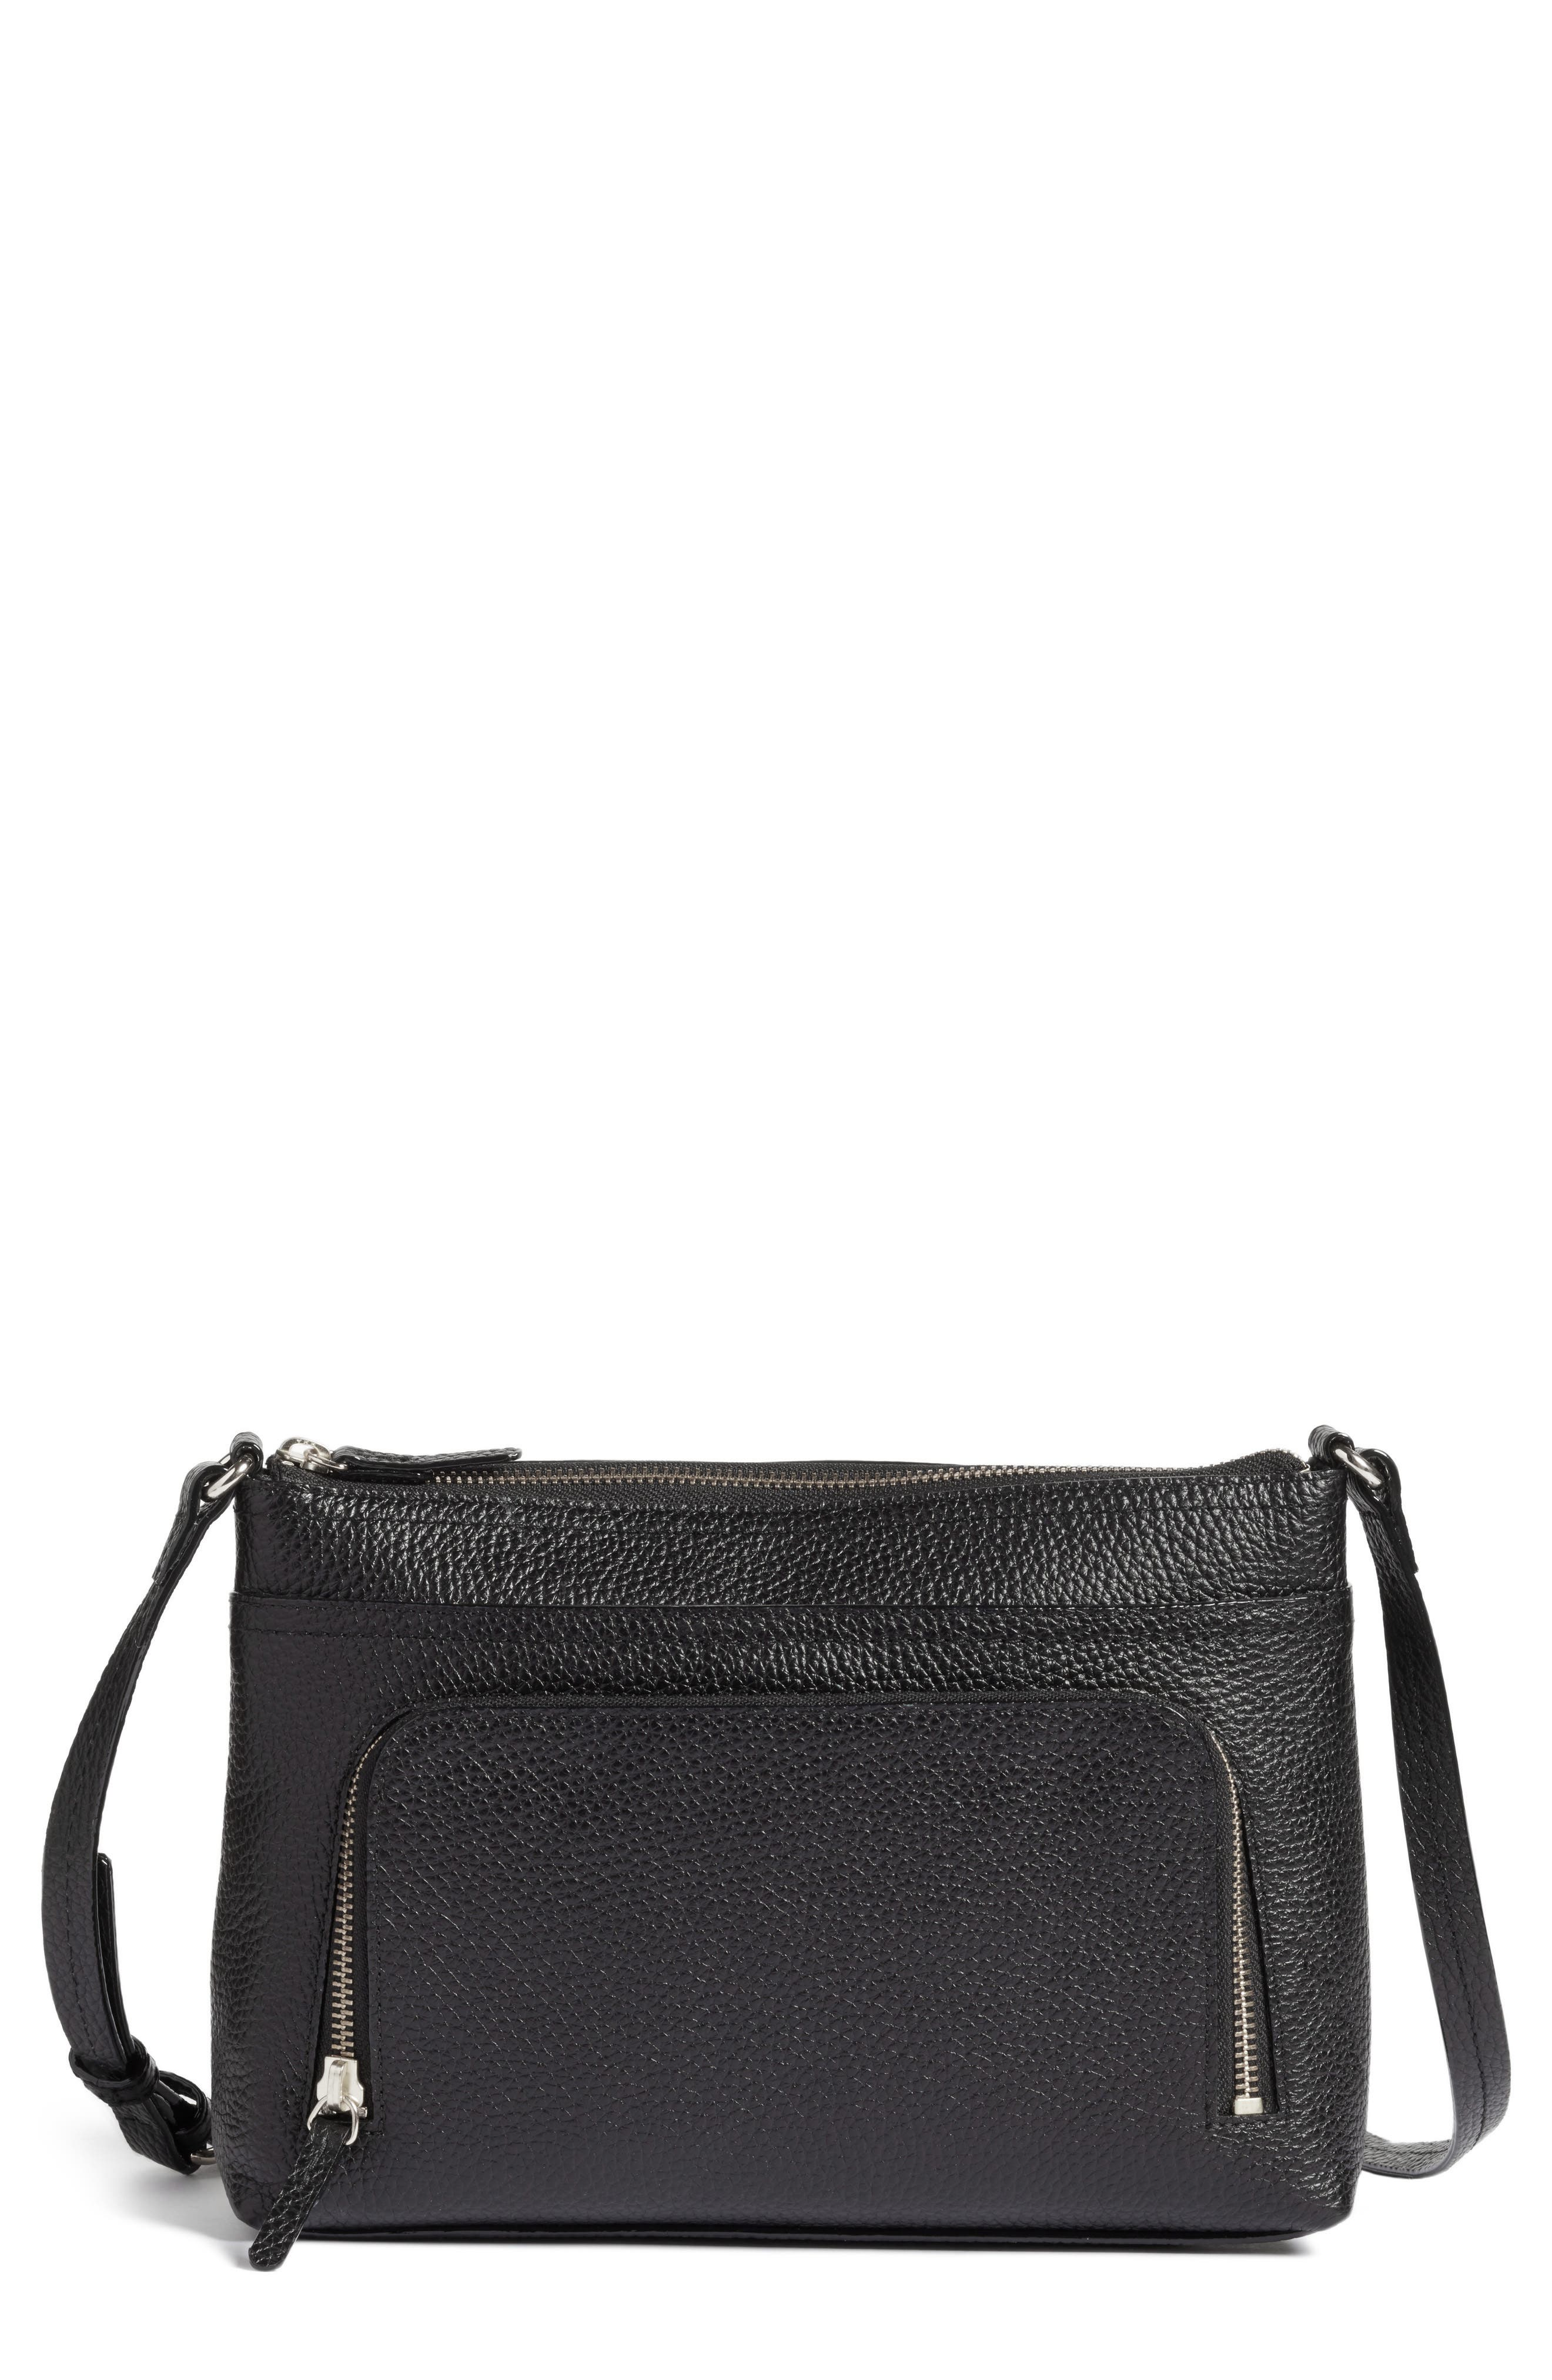 Alternate Image 1 Selected - Nordstrom Pebbled Leather Crossbody Bag